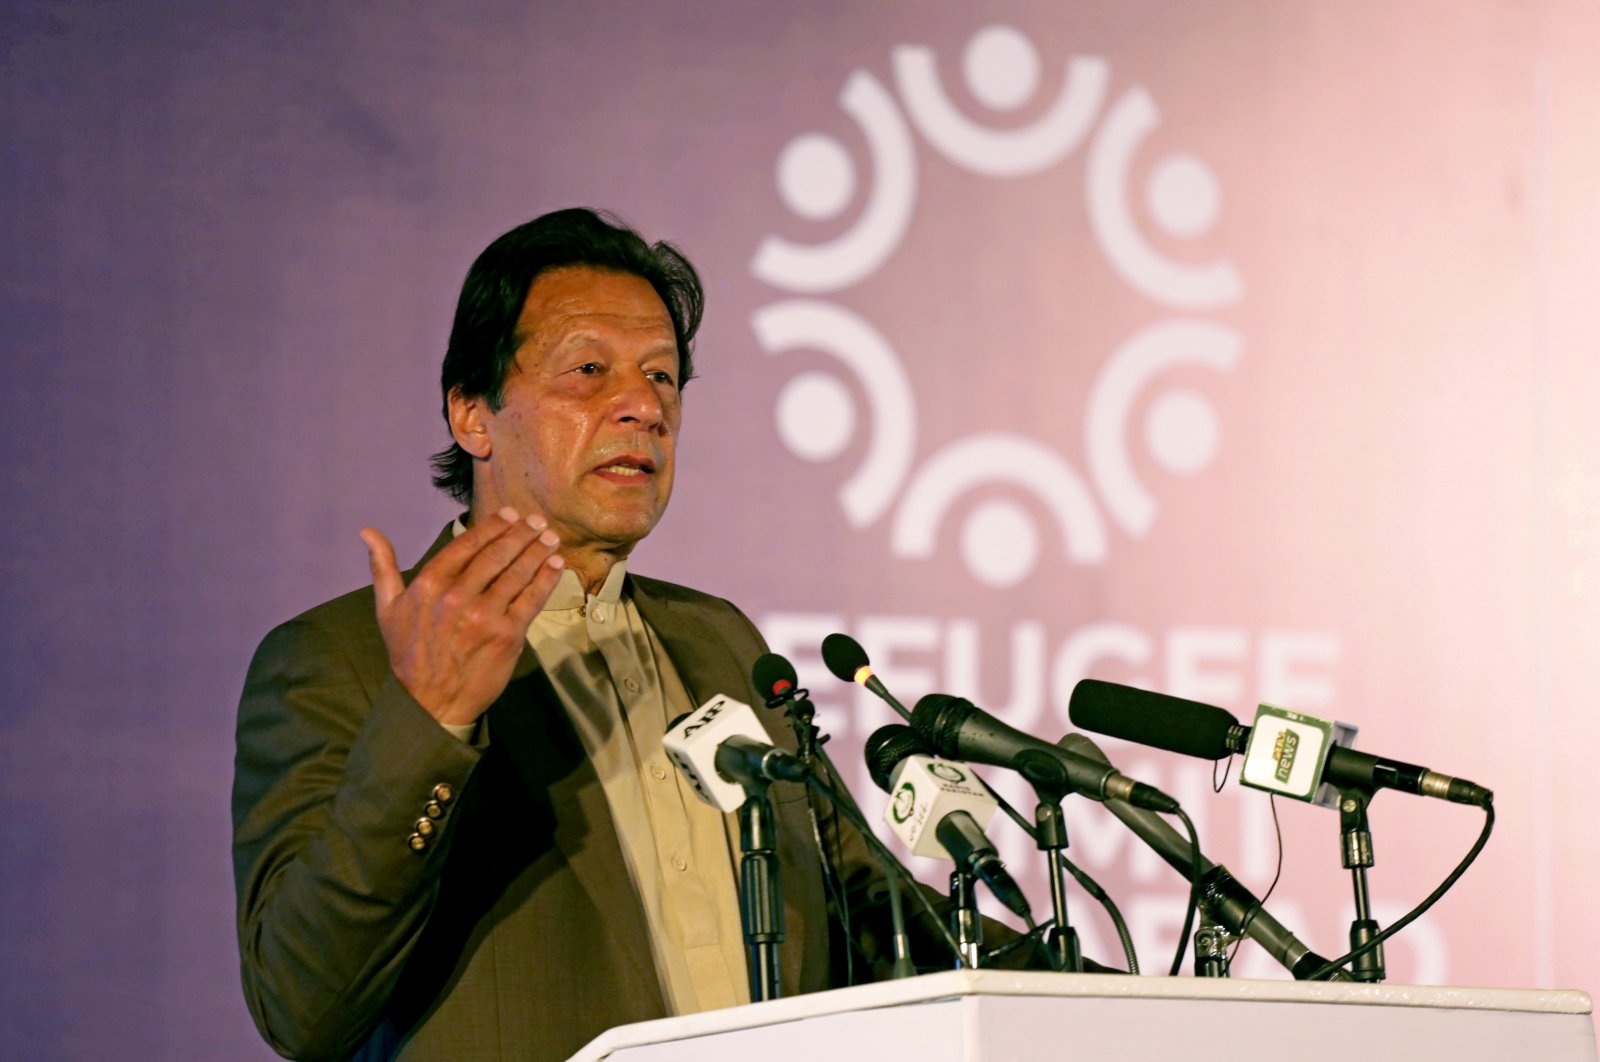 Pakistan's PM Imran Khan speaks during an international conference on the future of Afghan refugees living in Pakistan, organized by Pakistan and the U.N. Refugee Agency in Islamabad, Pakistan Feb. 17, 2020. (Reuters Photo)